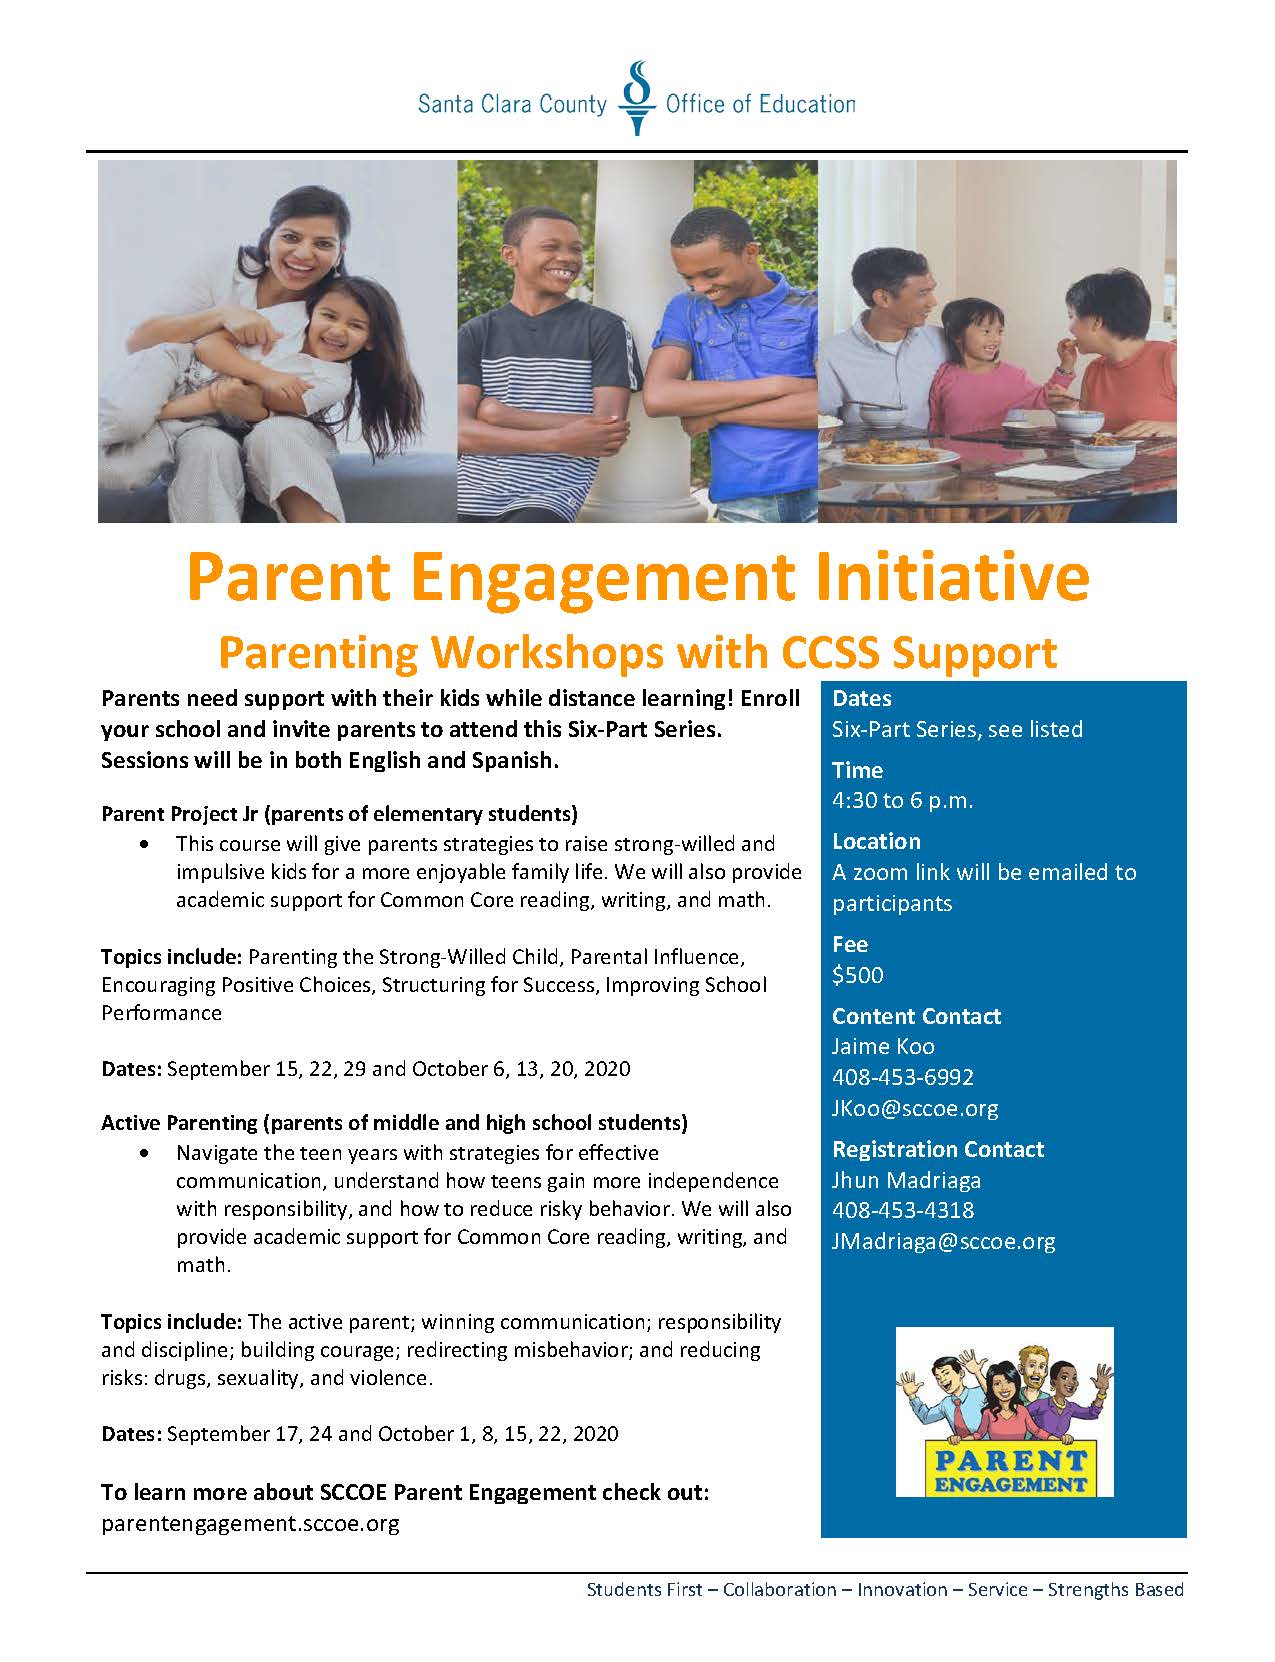 Parent Engagement Webinar 2020 Flyer.jpg